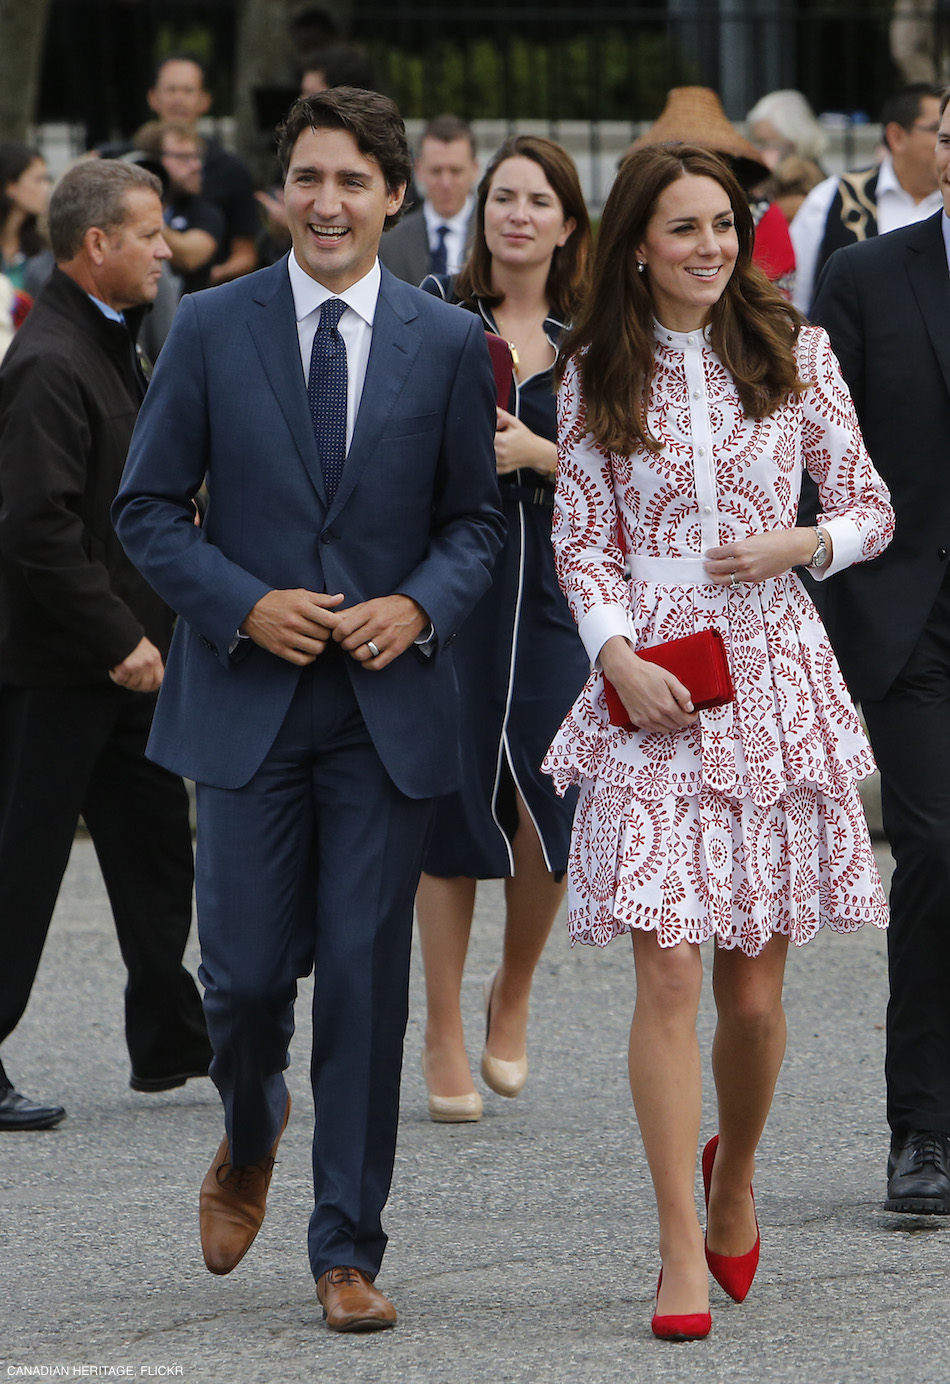 Kate Middleton wearing Alexander McQueen red and white dress in Vancouver